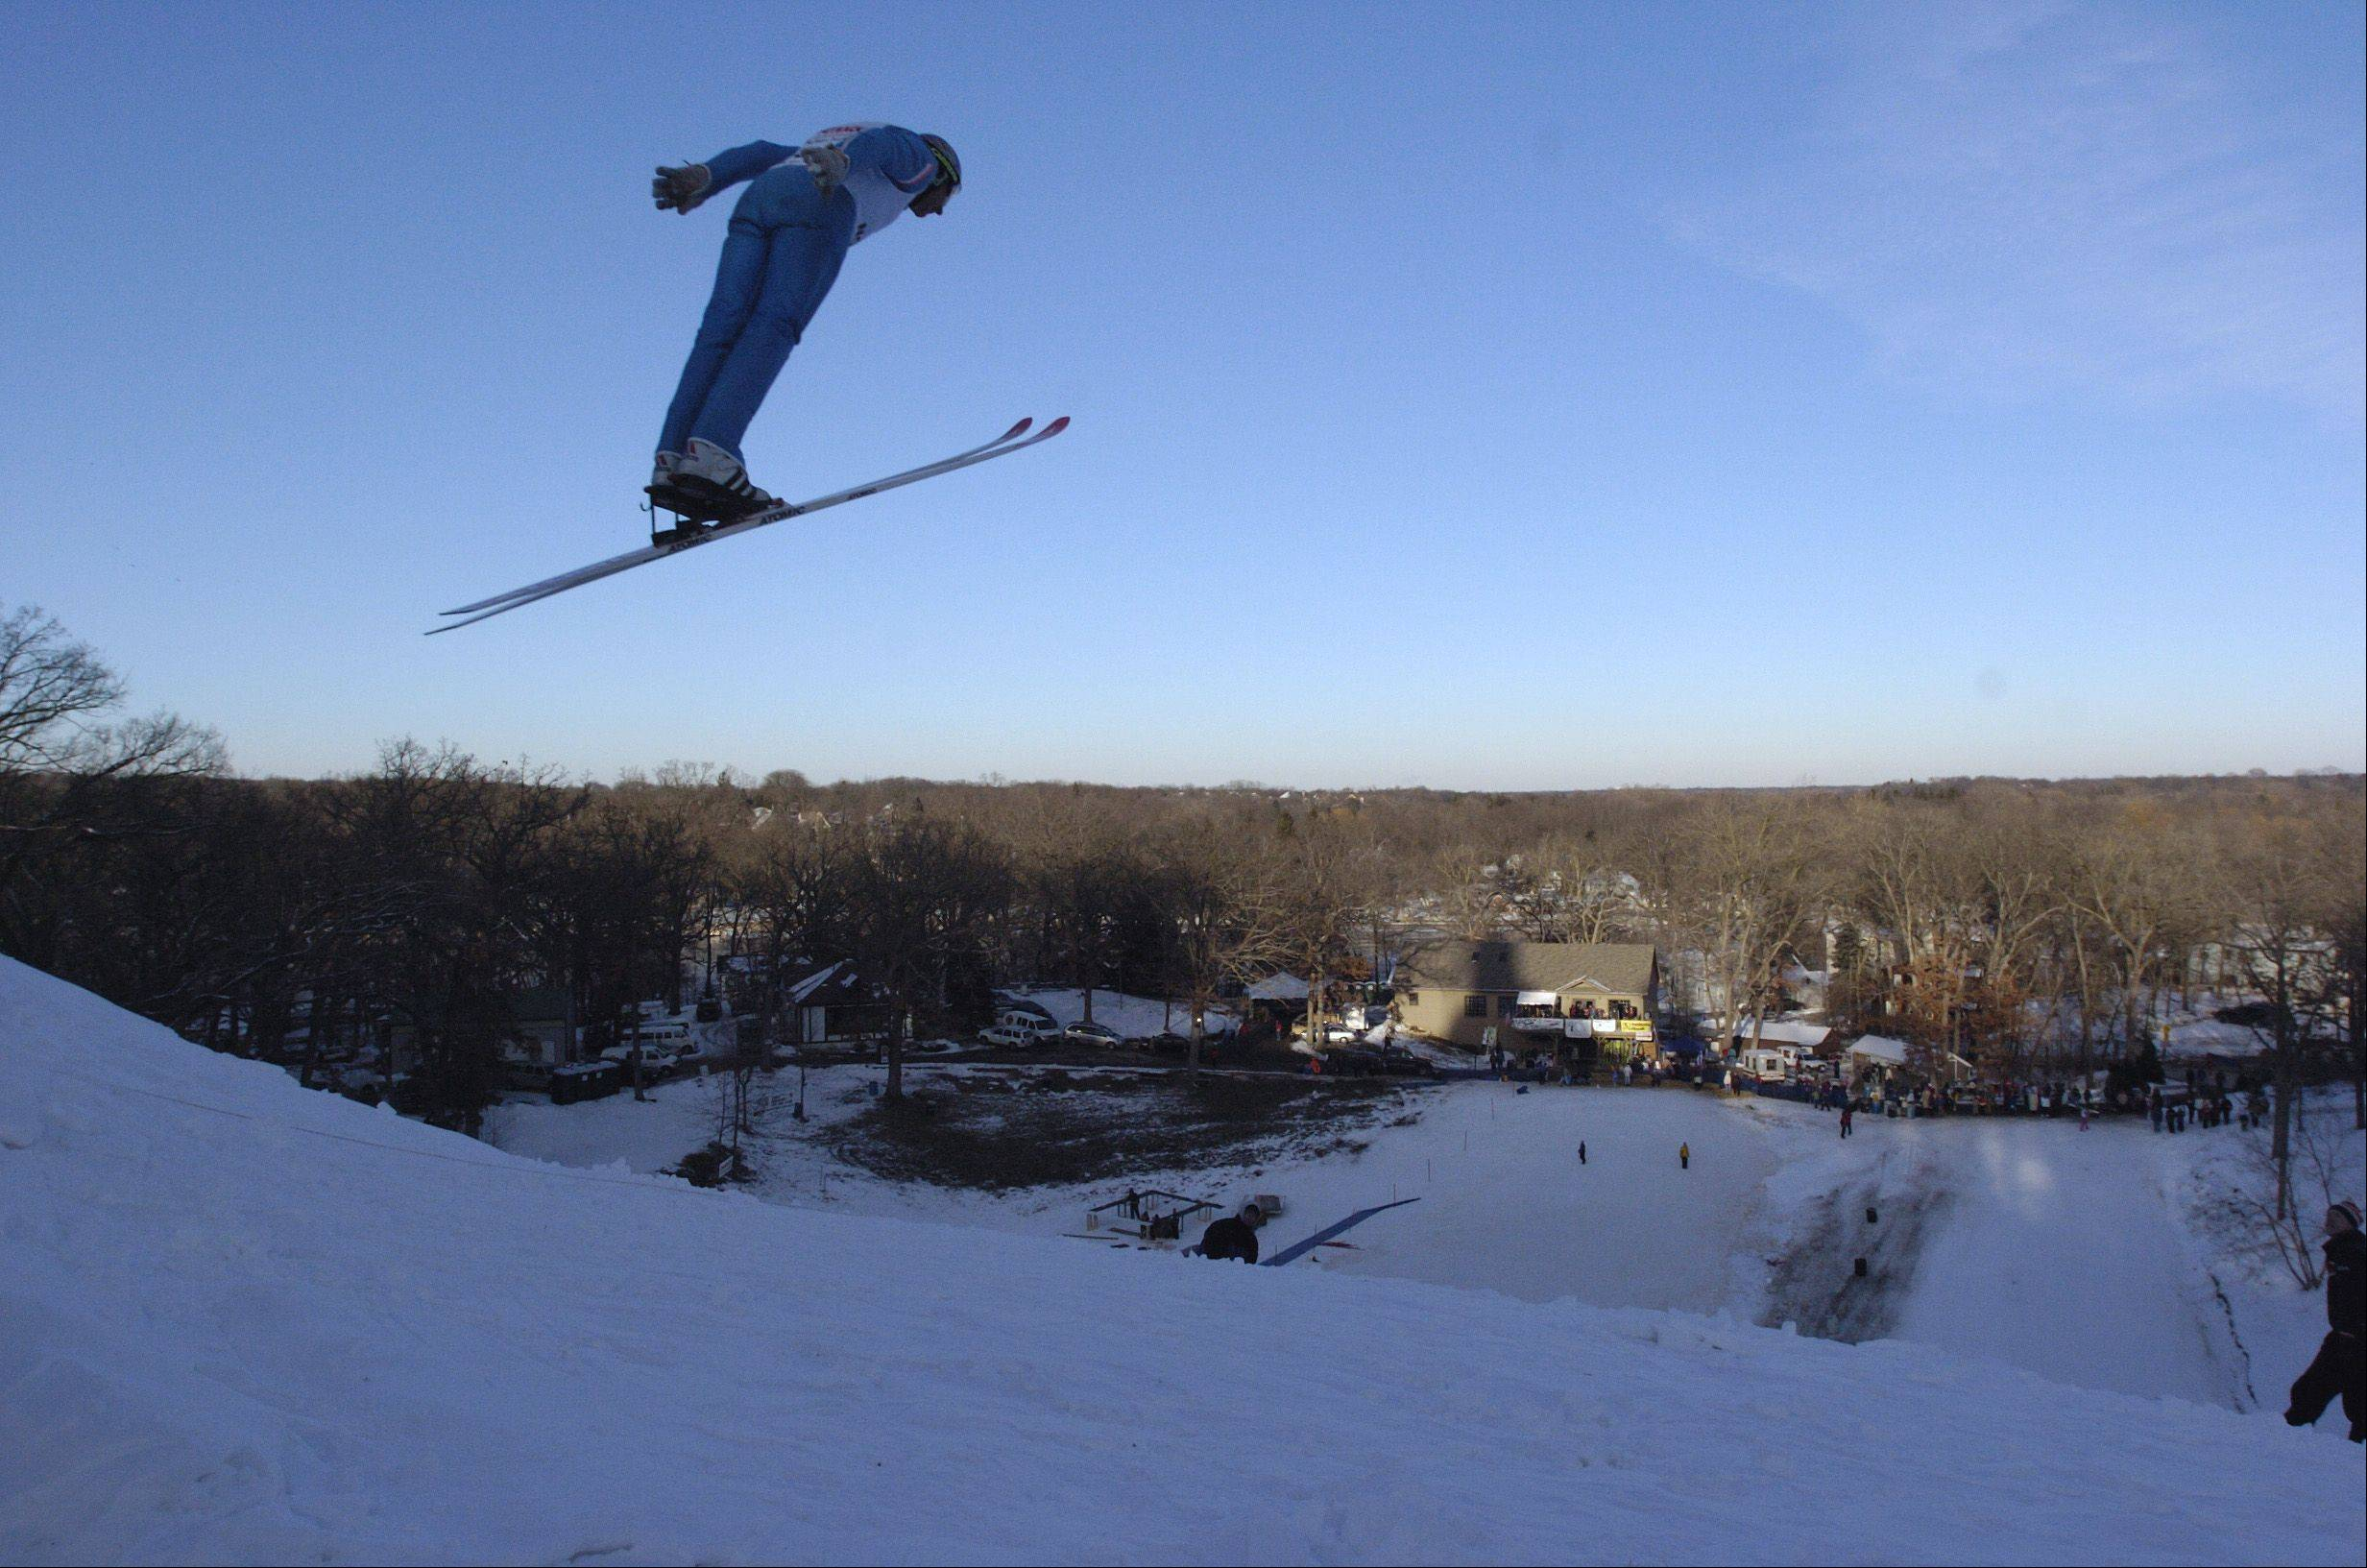 Norge Ski Club's tournament weekend is filled with competitions, including the 40-meter jump.